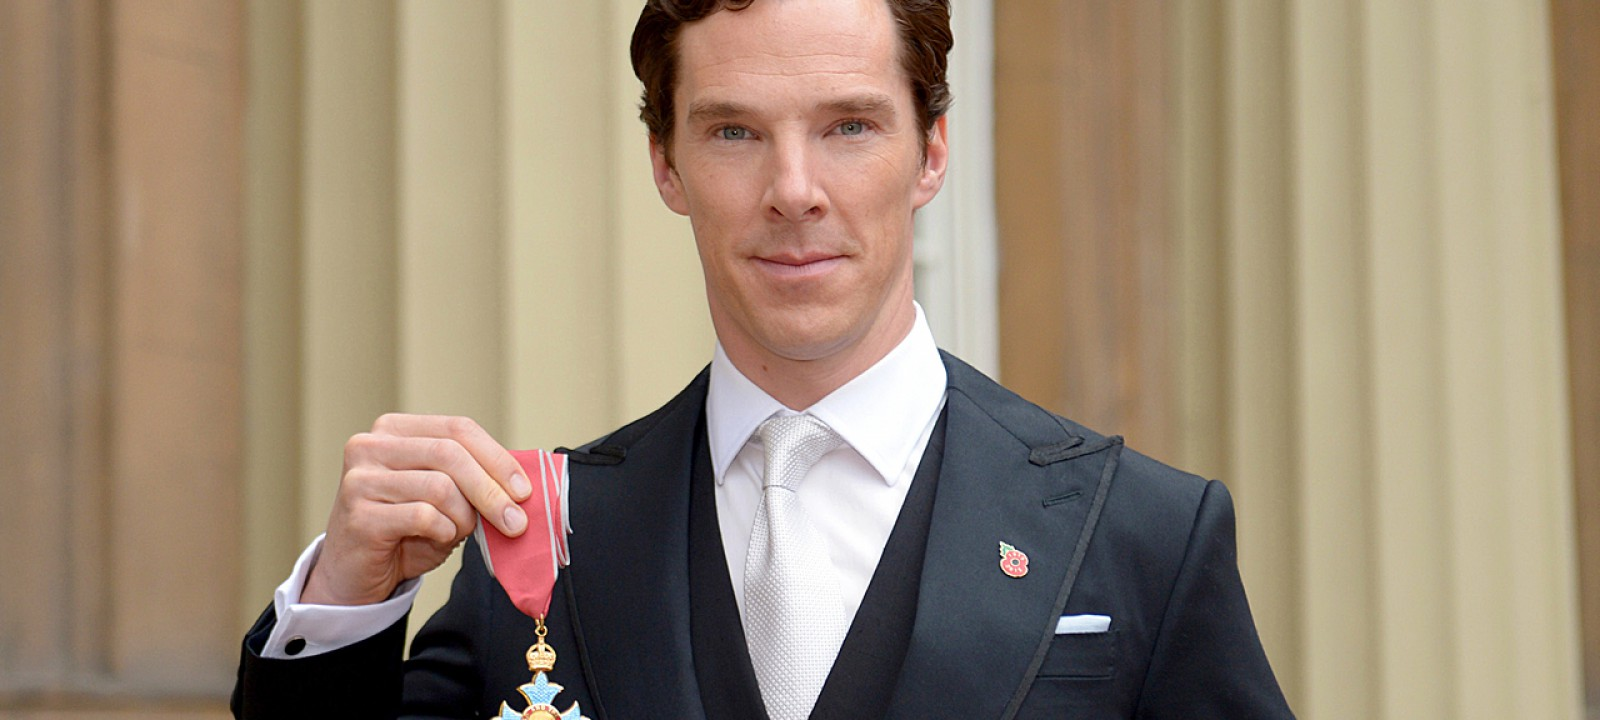 Benedict Cumberbatch receives his CBE at Buckingham Palace (Photo: WPA Pool / Getty Images)